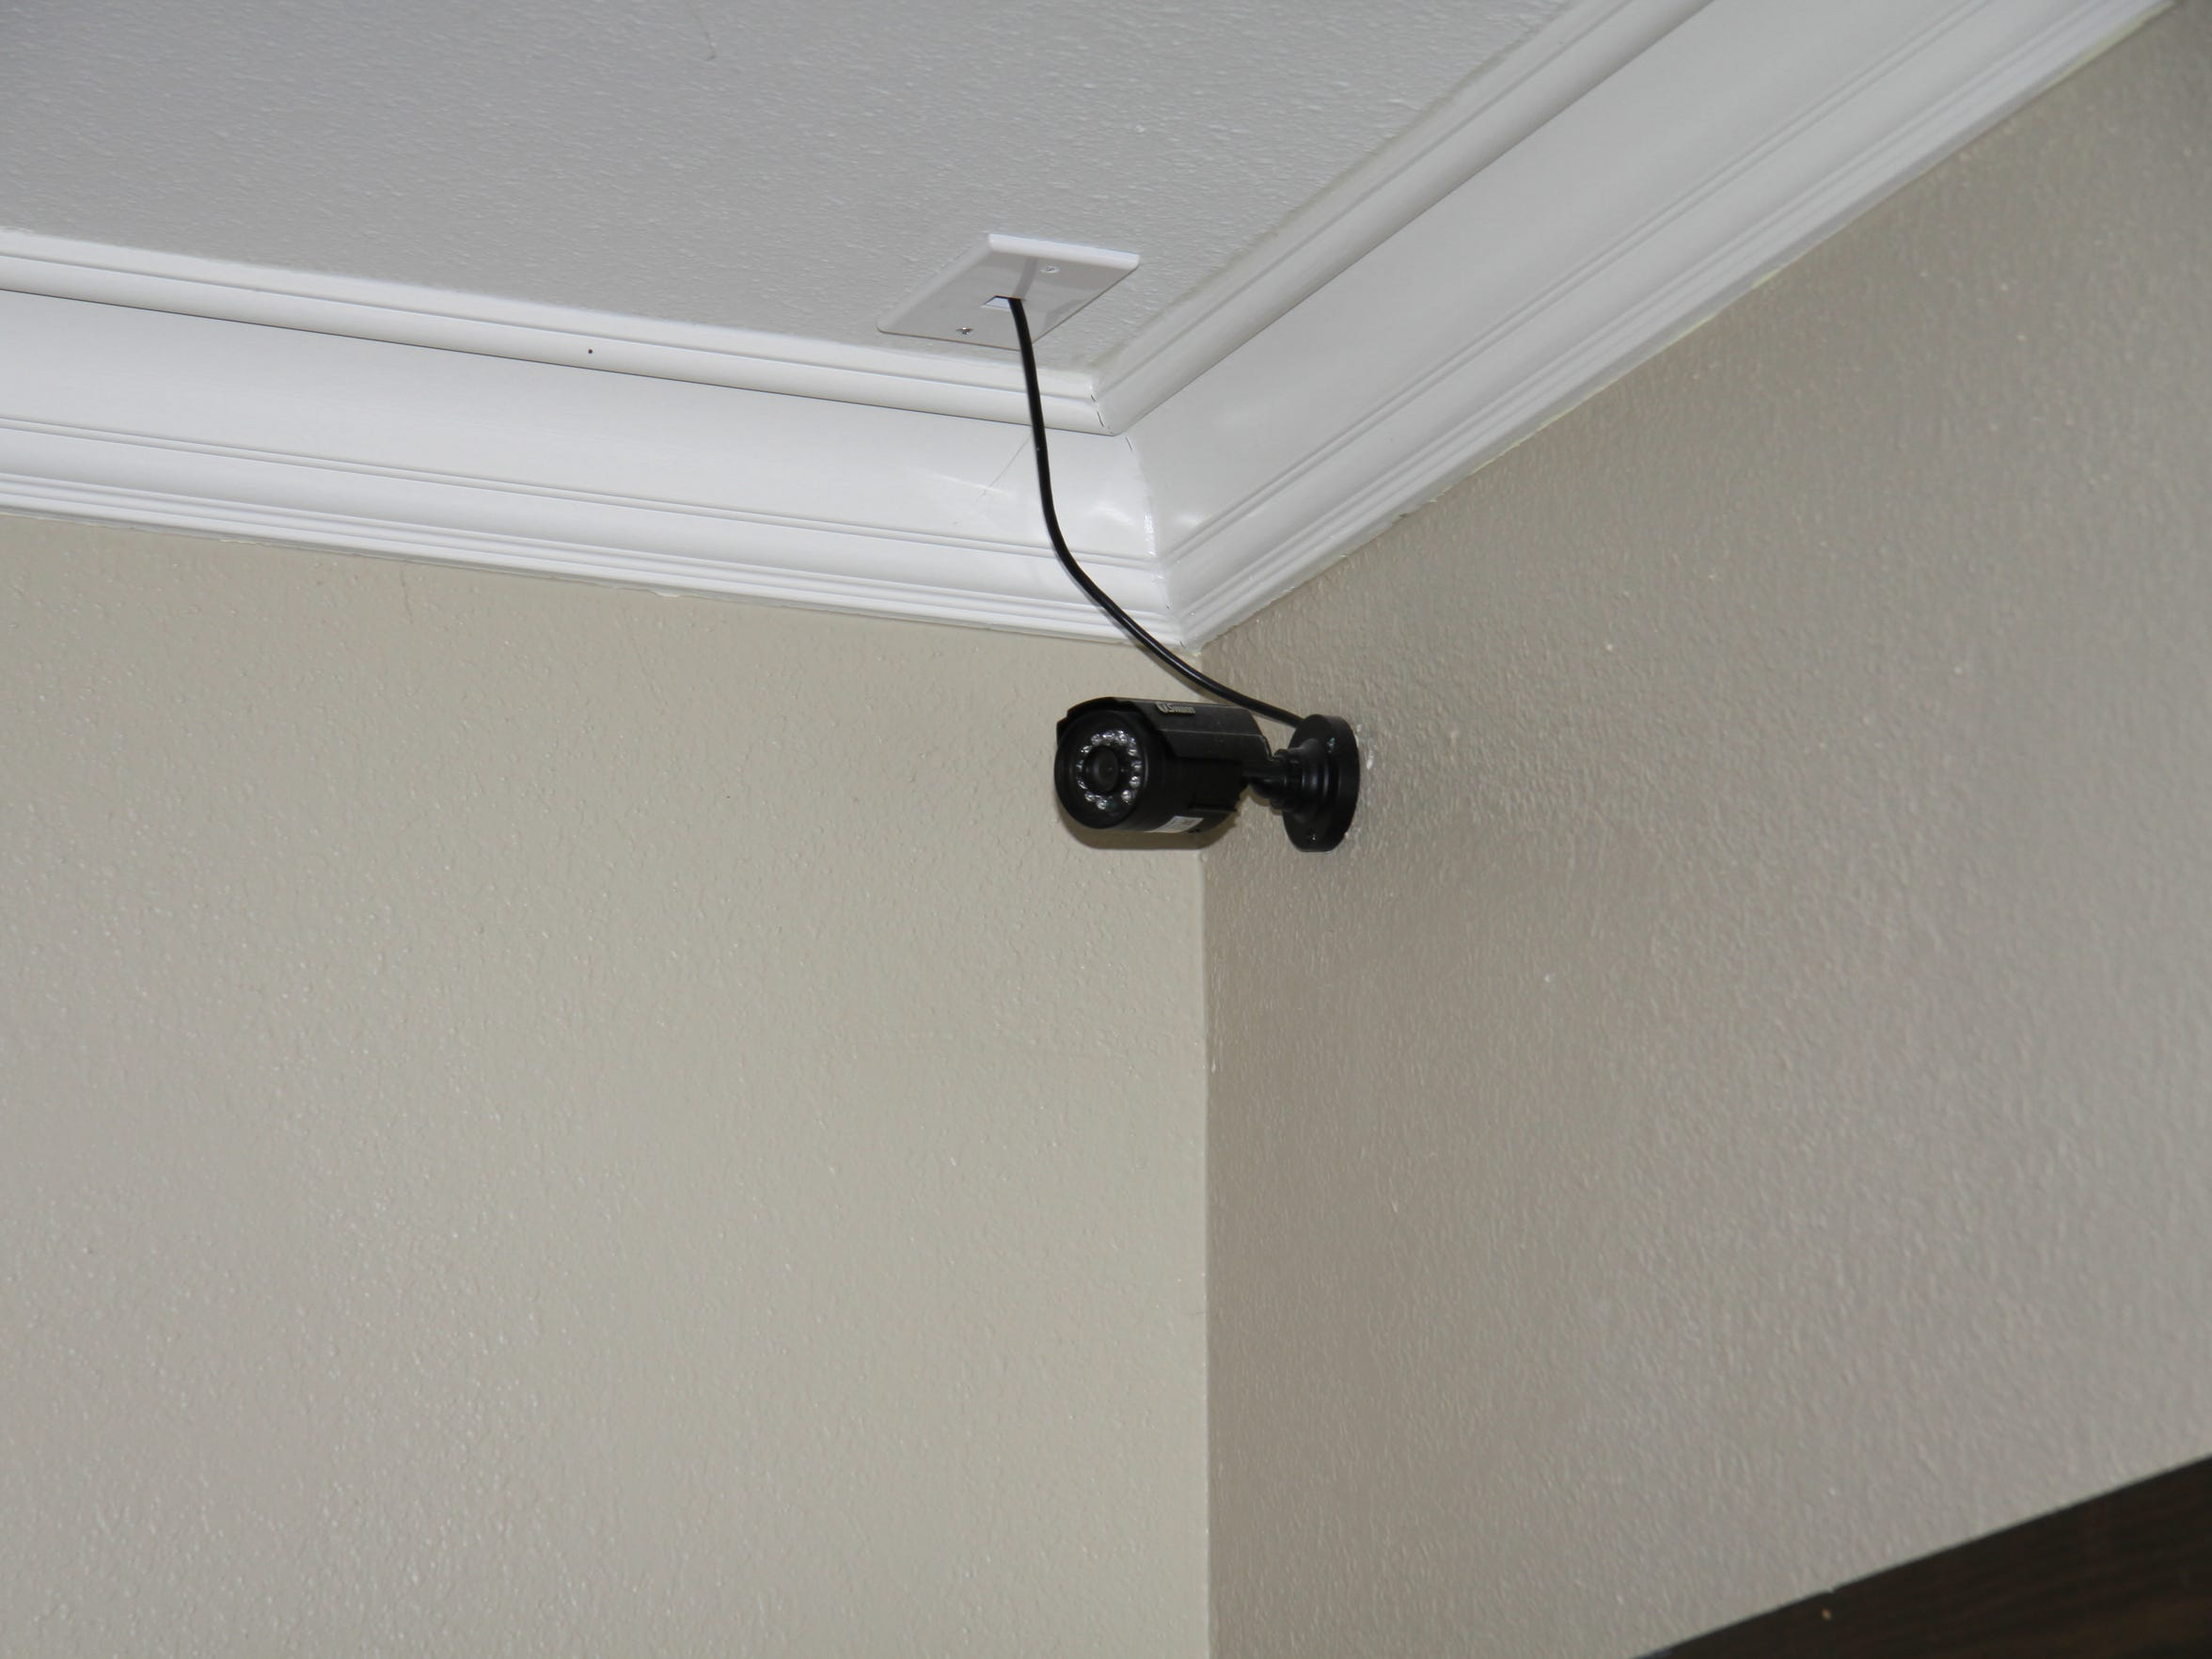 A camera found in the home of Rebekah Mellon and her